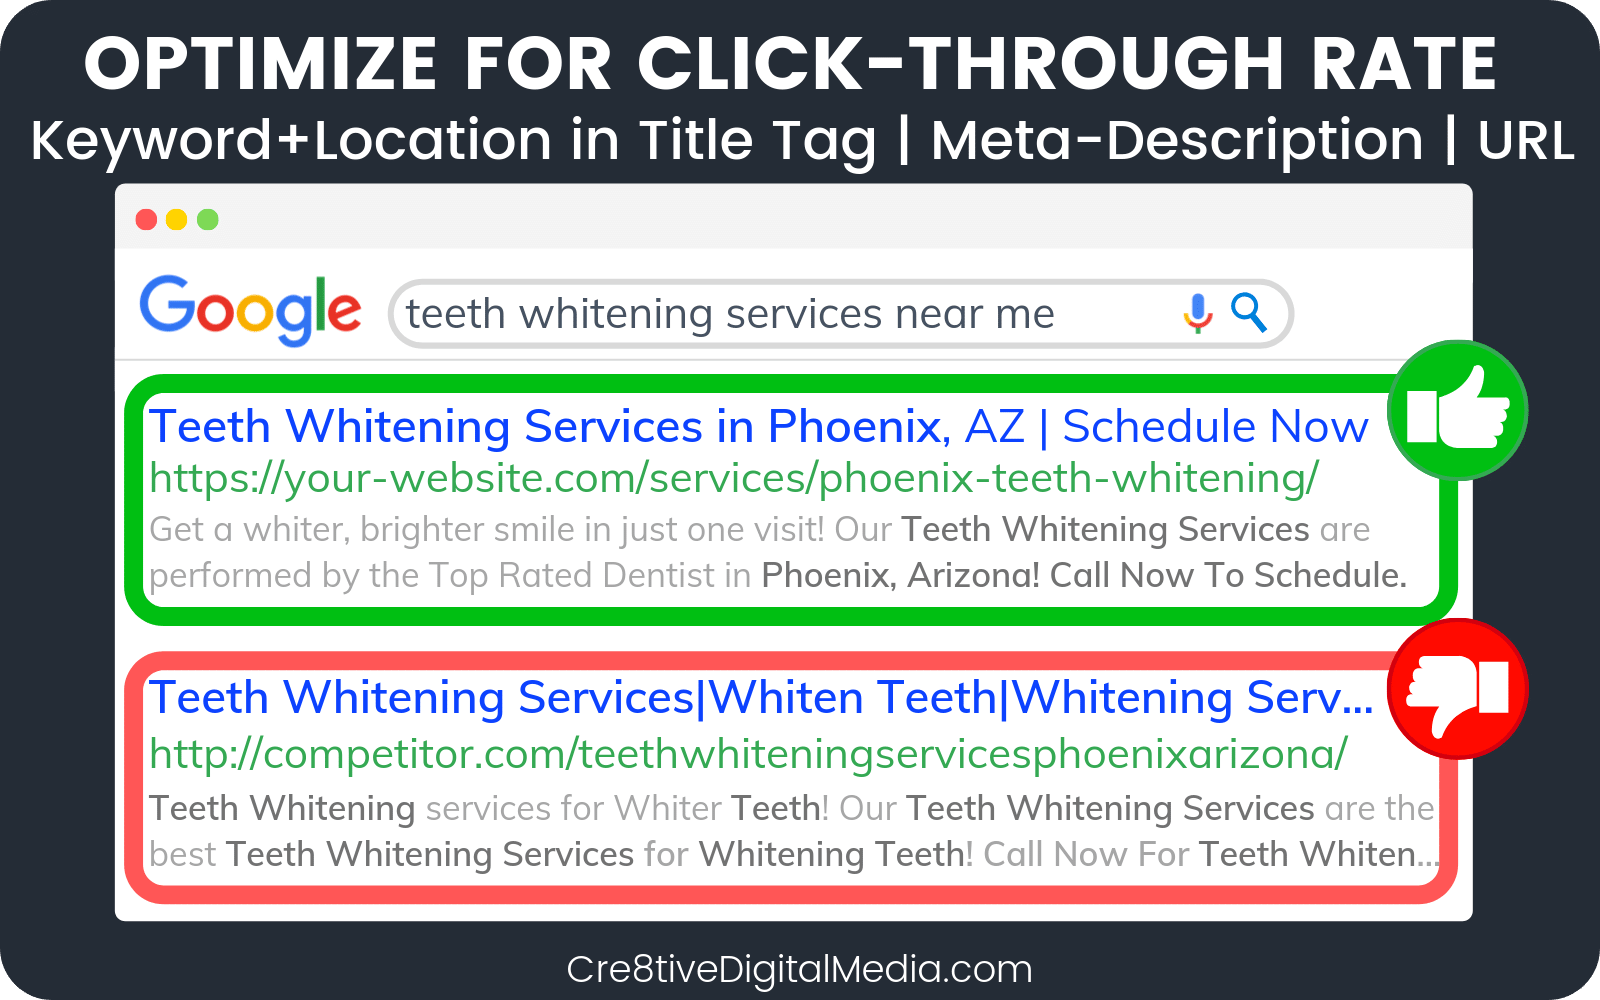 Locally Optimized Title Tag, URL and Meta-description in SERPs